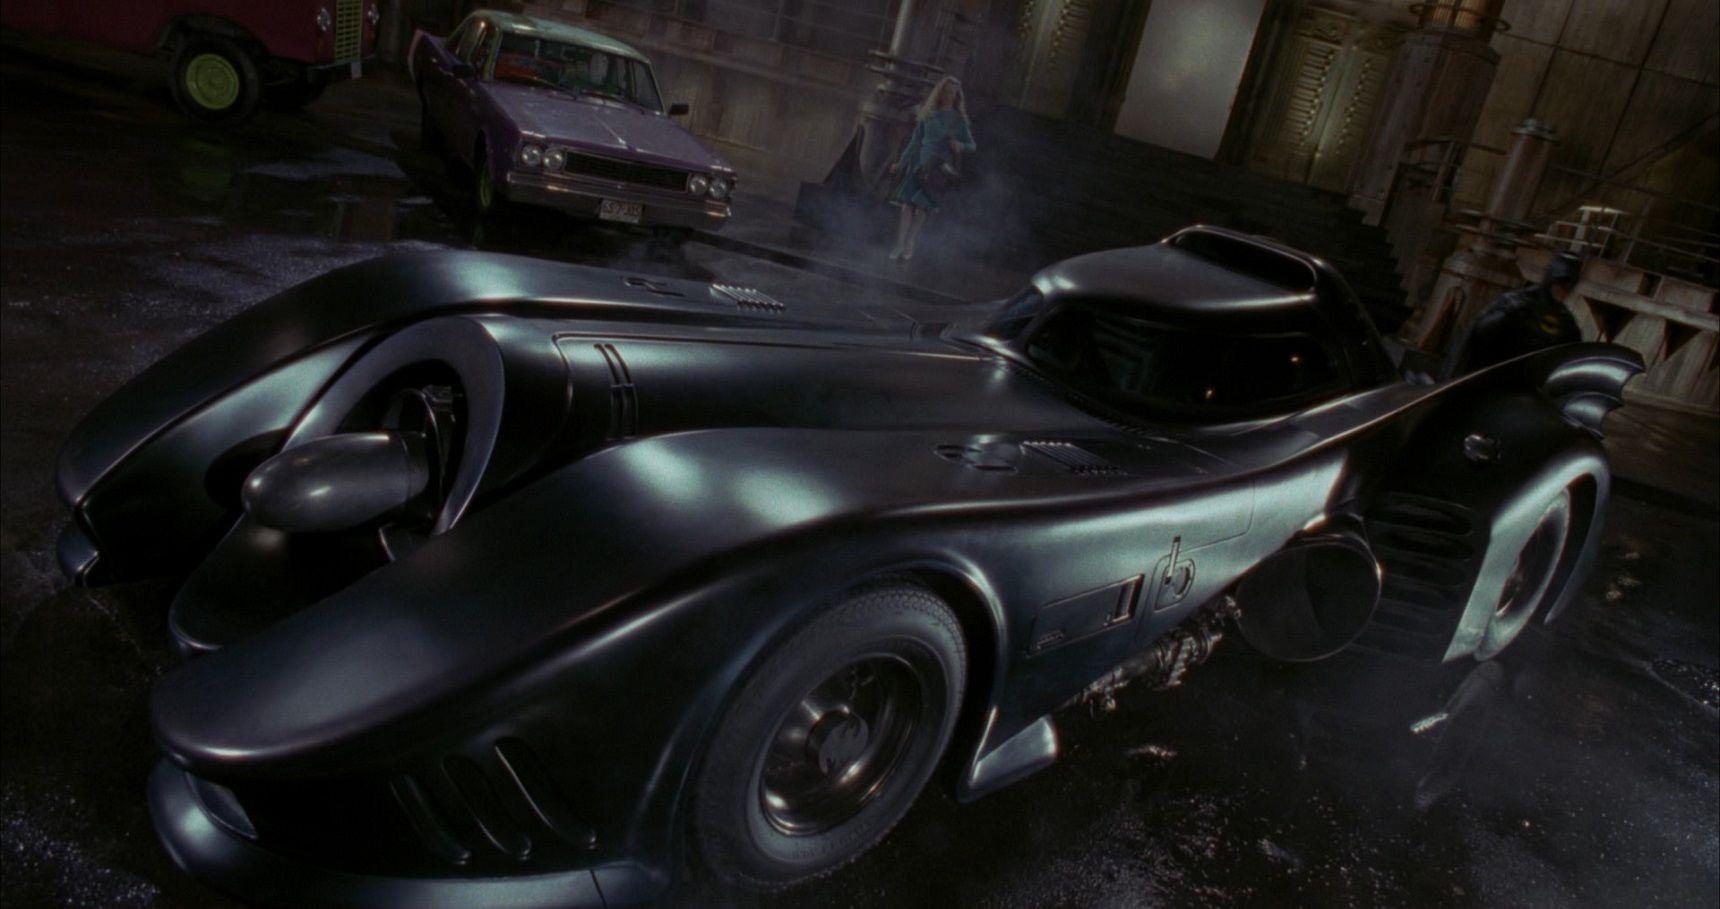 The 15 Most Memorable Cars In Movies And Television